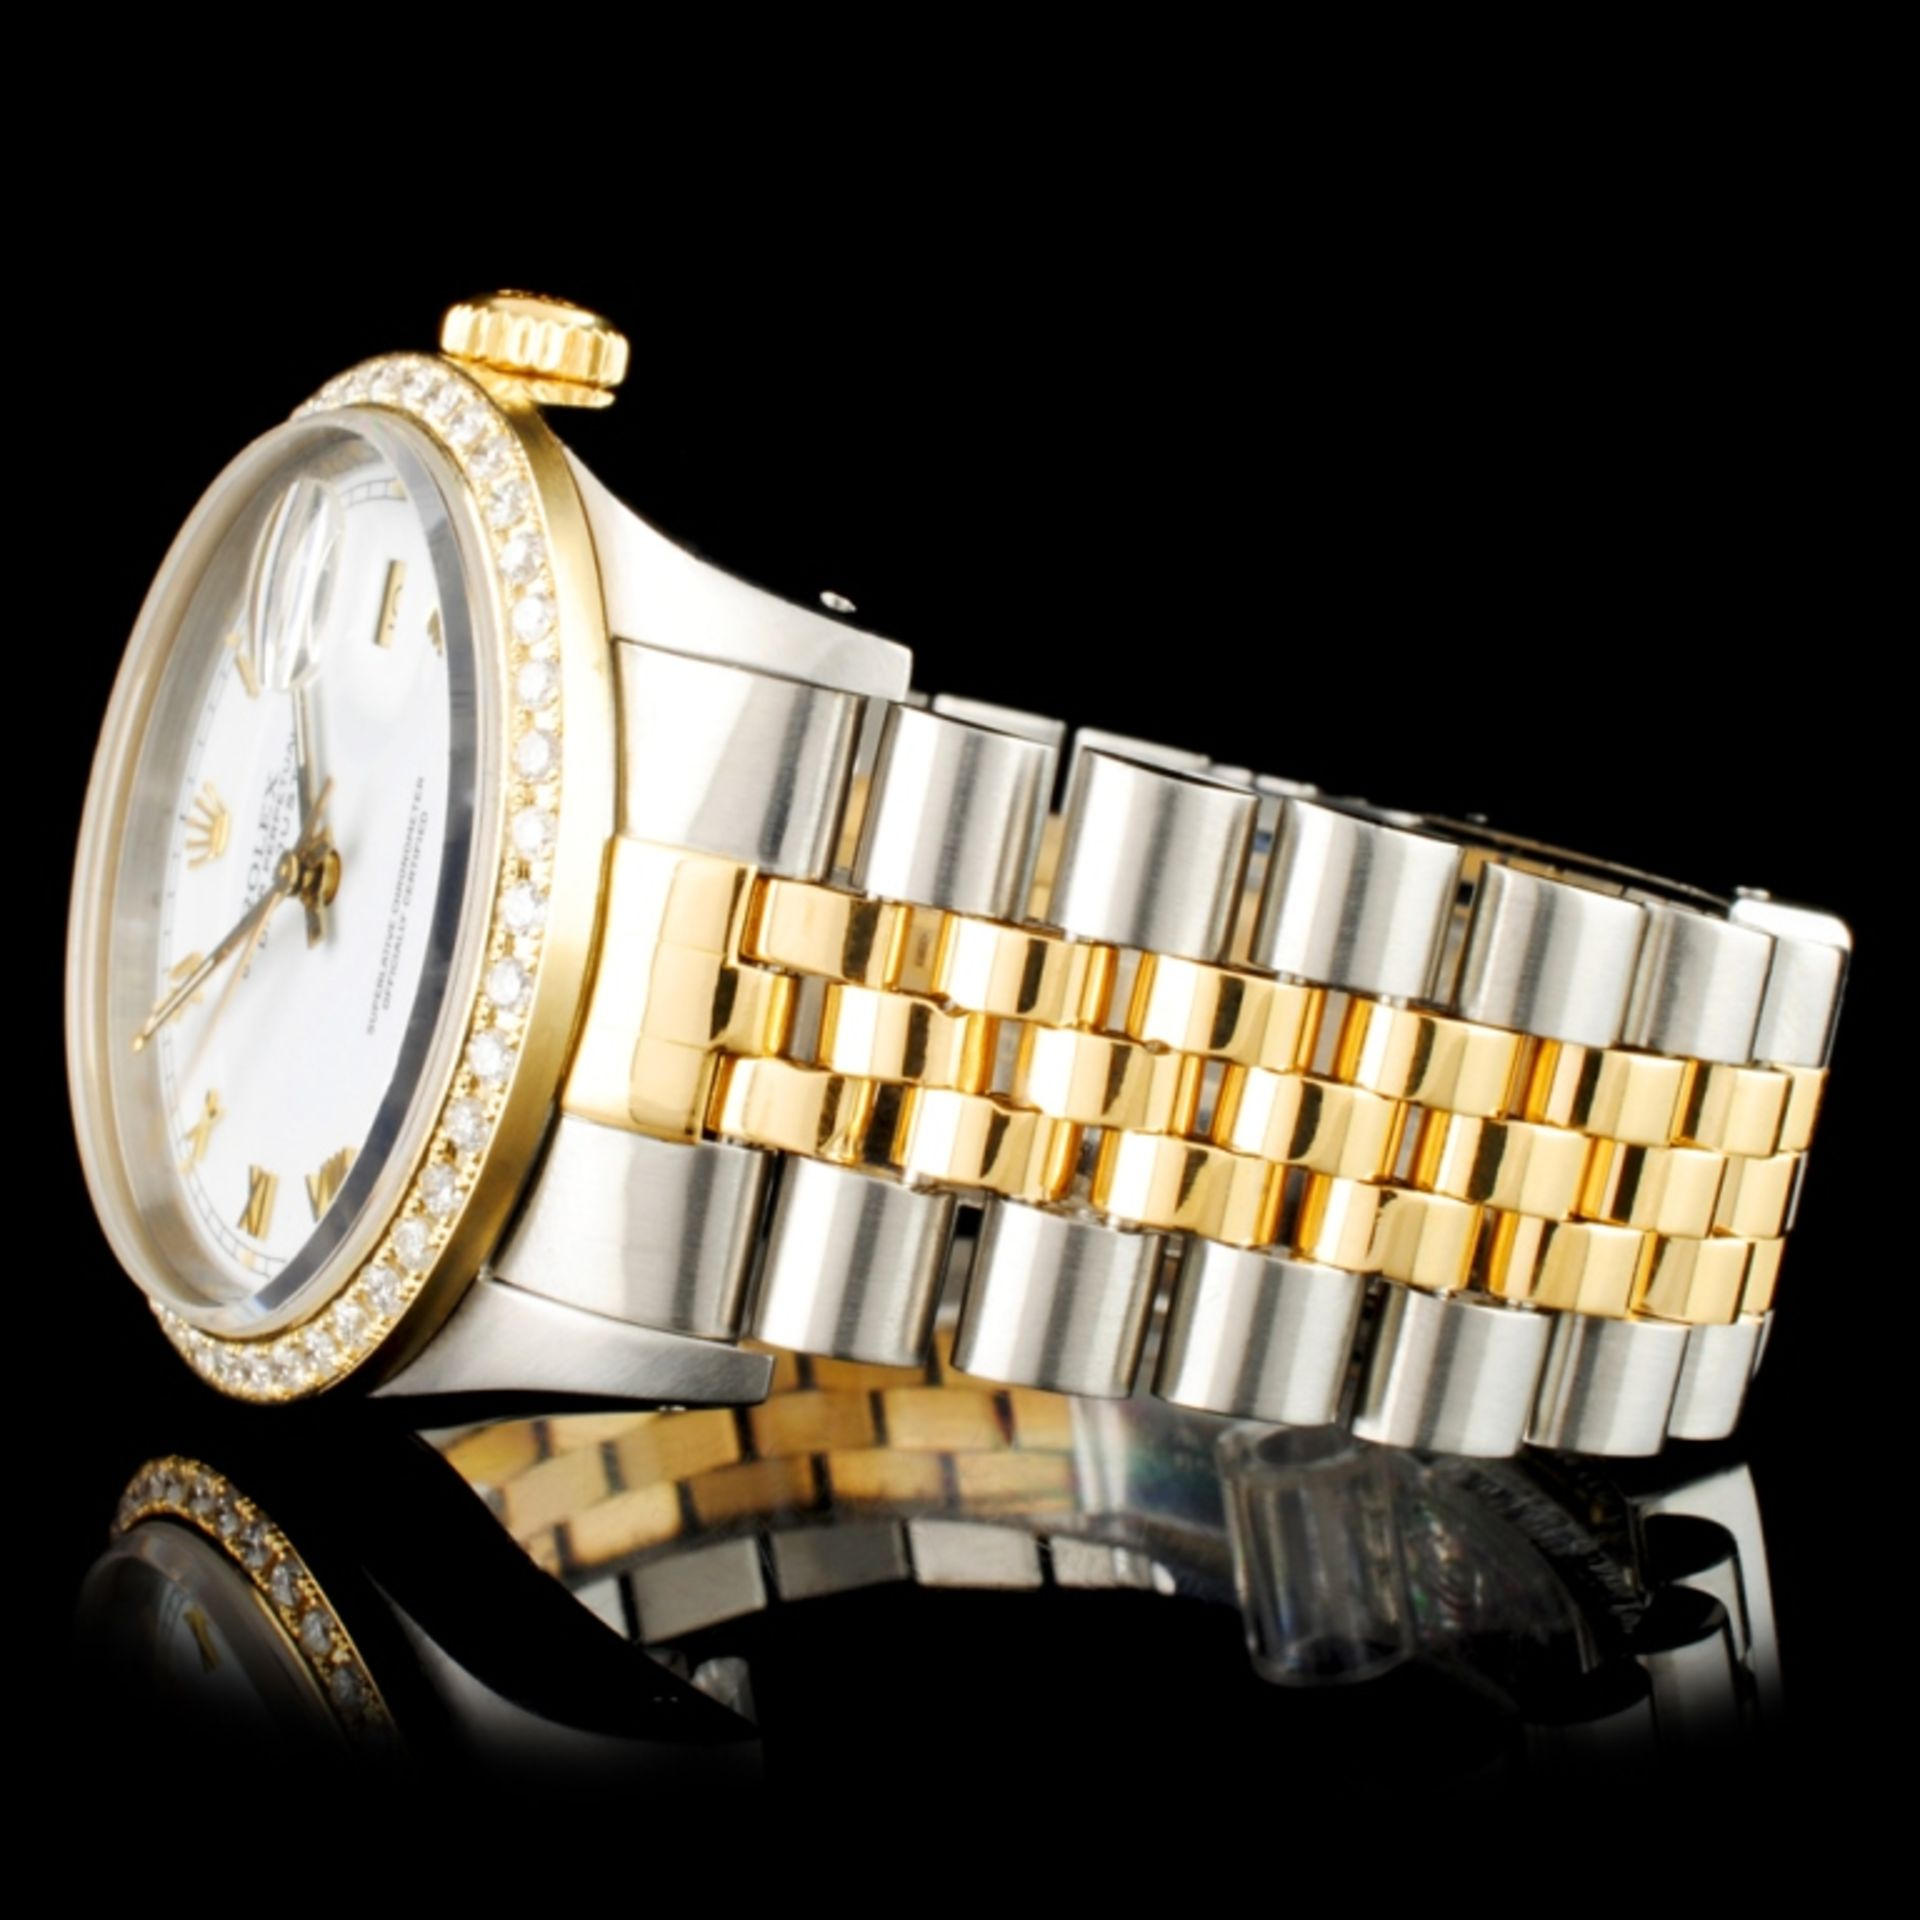 Rolex DateJust Diamond 36MM Wristwatch - Image 3 of 6